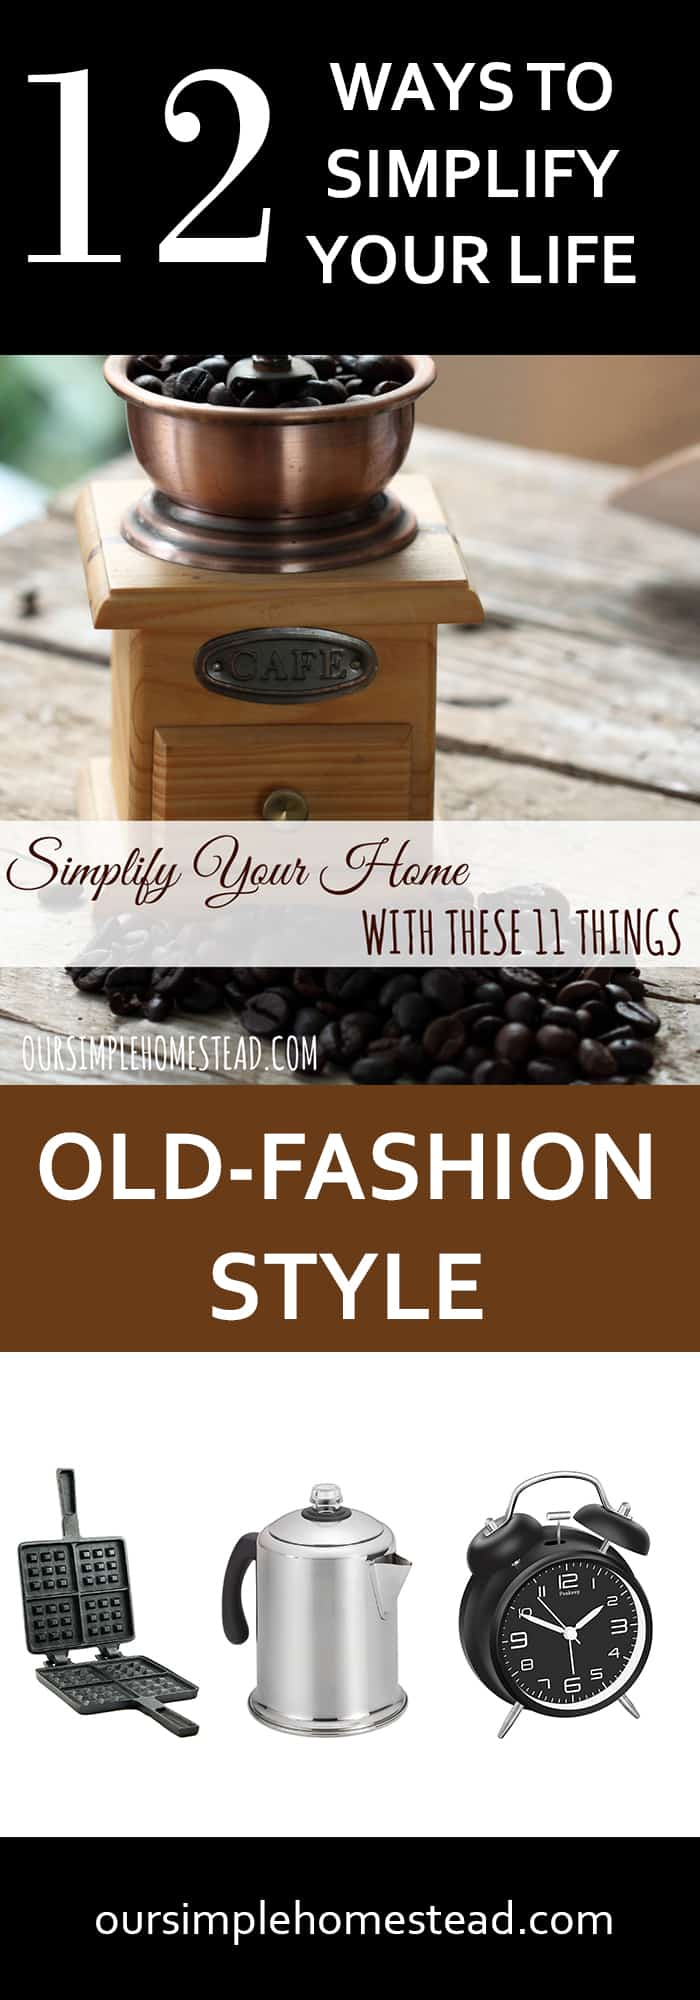 Simplify Your Life - Old-fashion Style